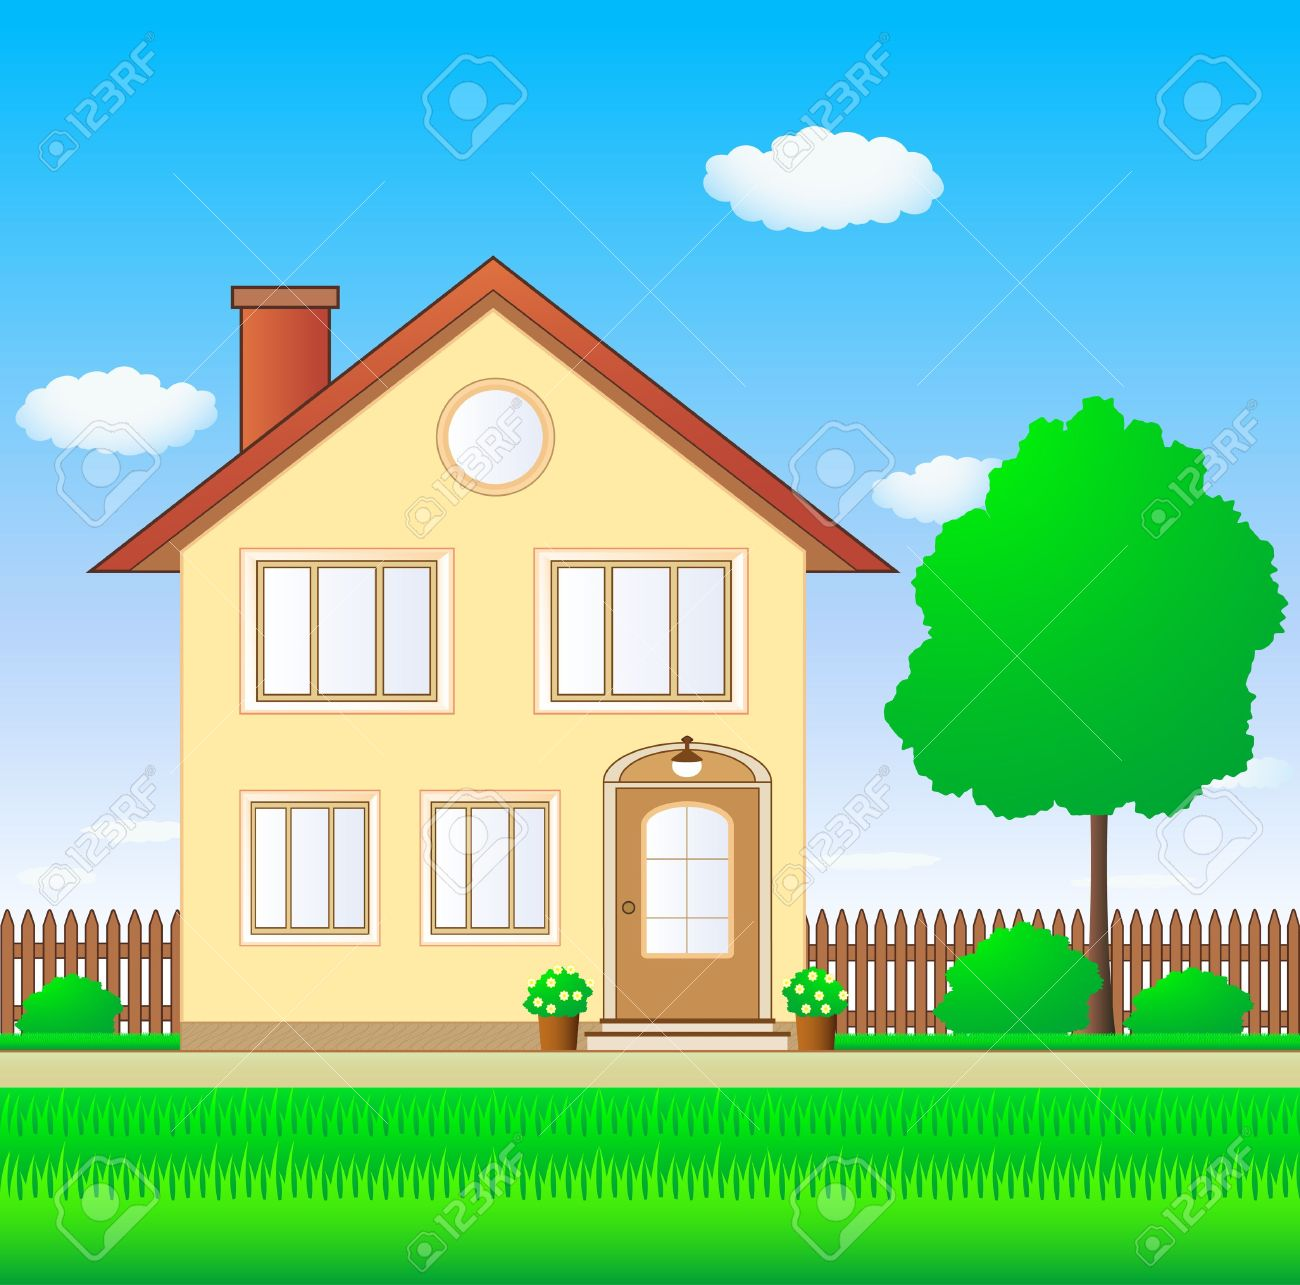 Lawn House Clipart.